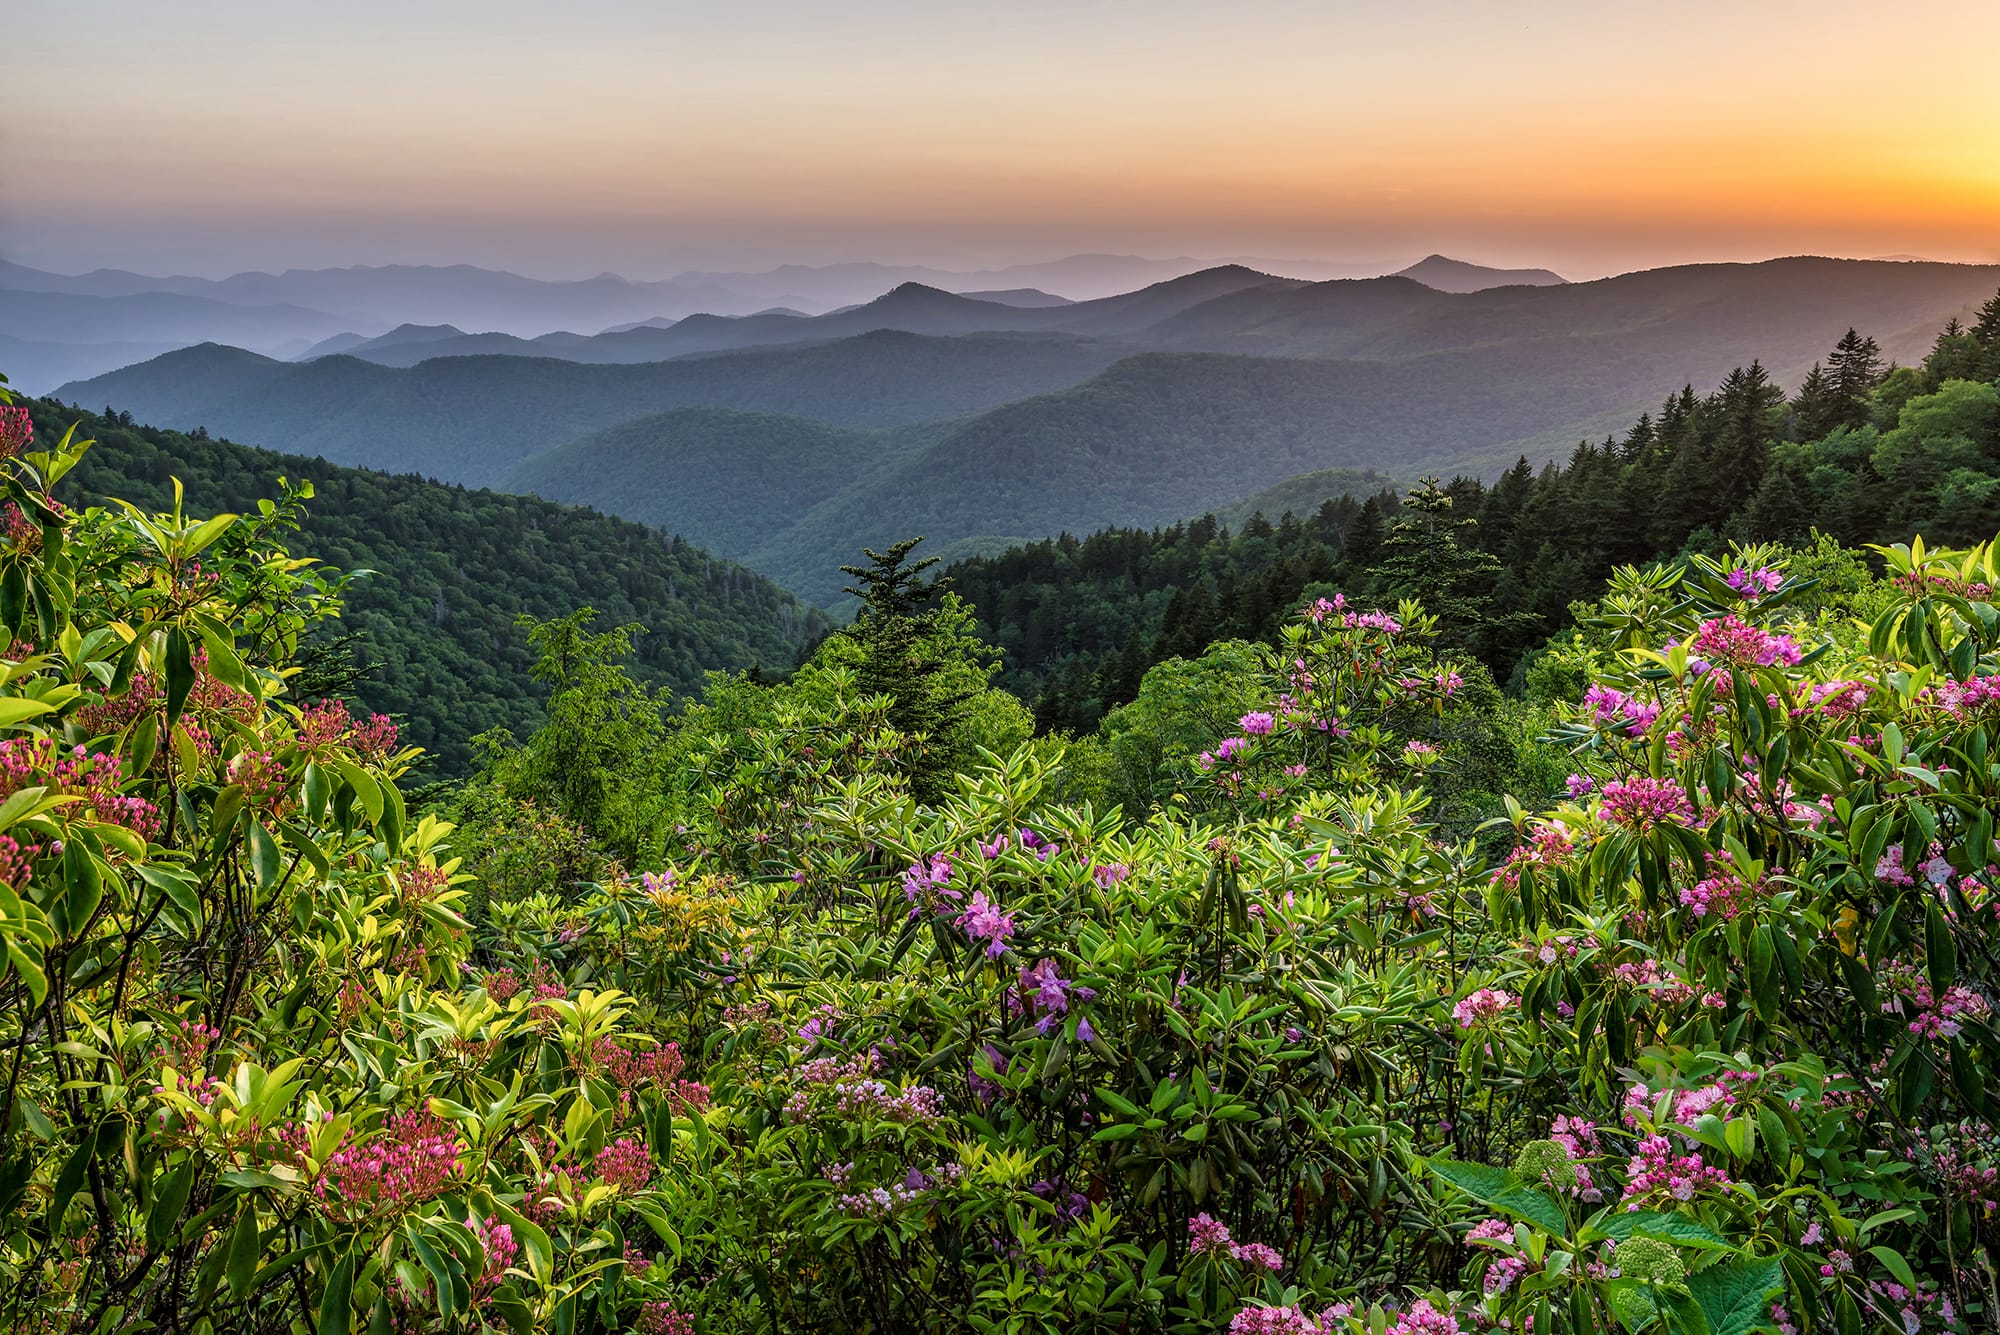 Overlooking rhododendron filled mountains